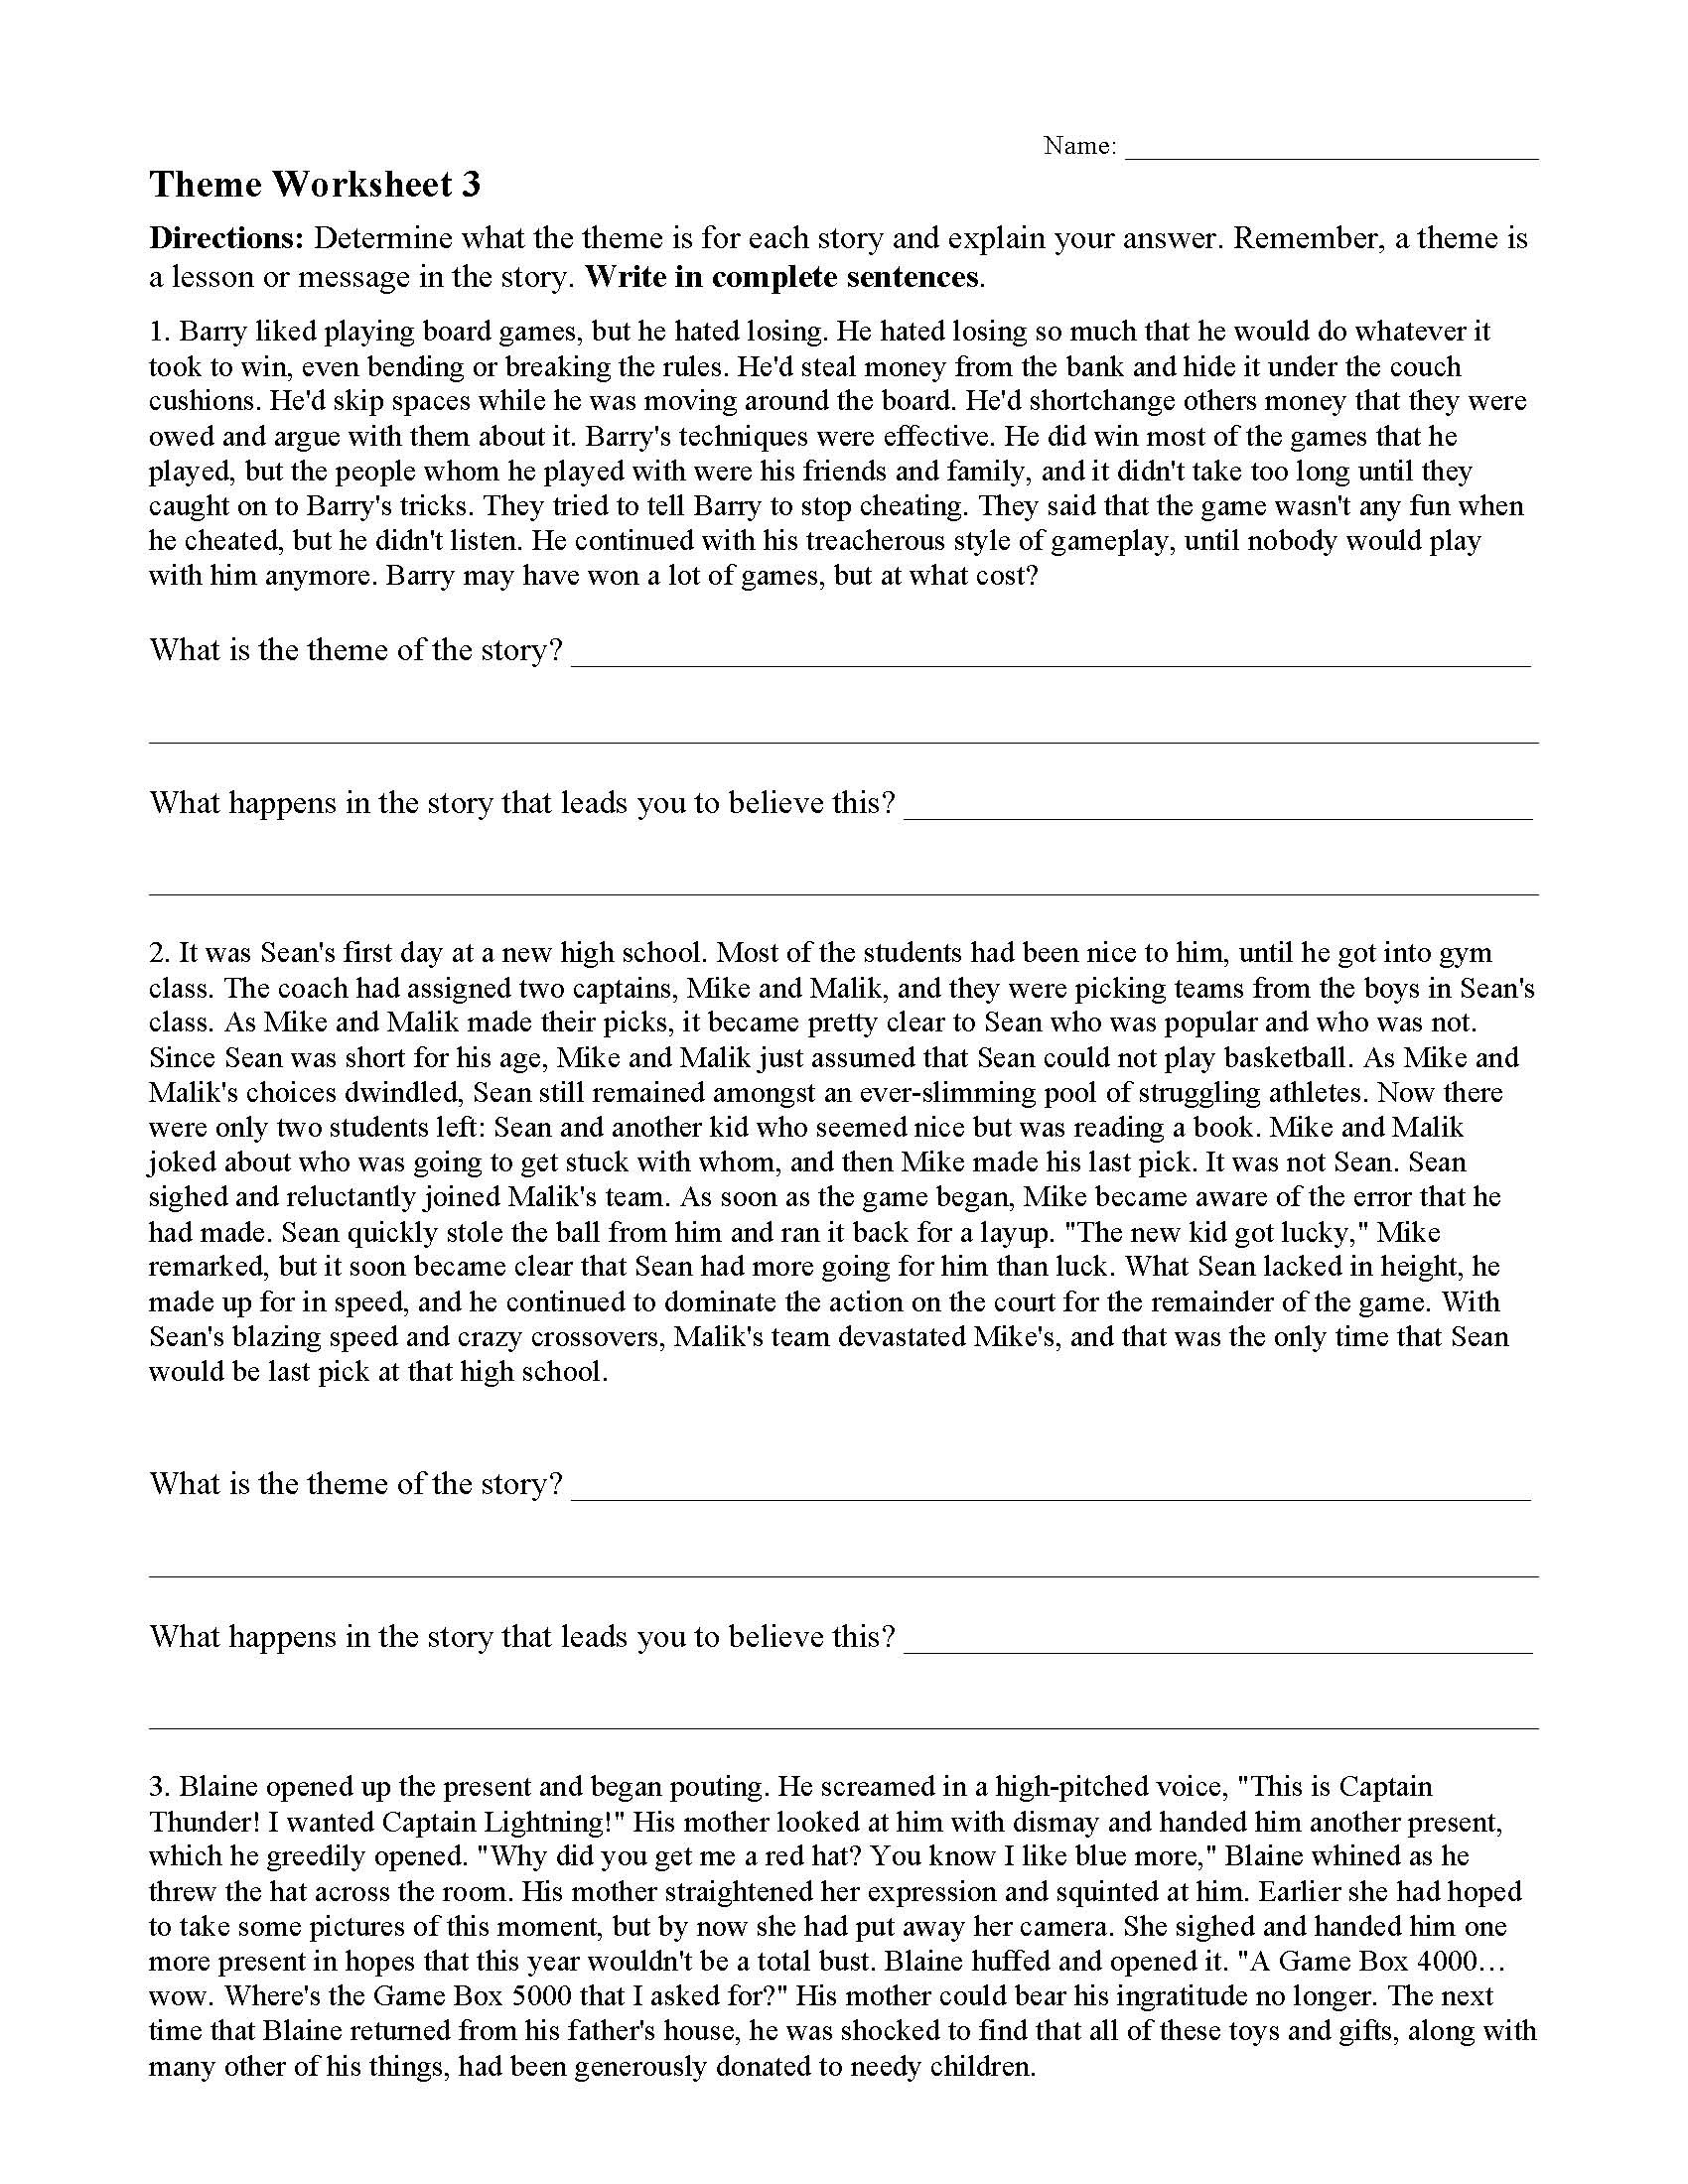 Theme Worksheets for 5th Grade theme or Author S Message Worksheets